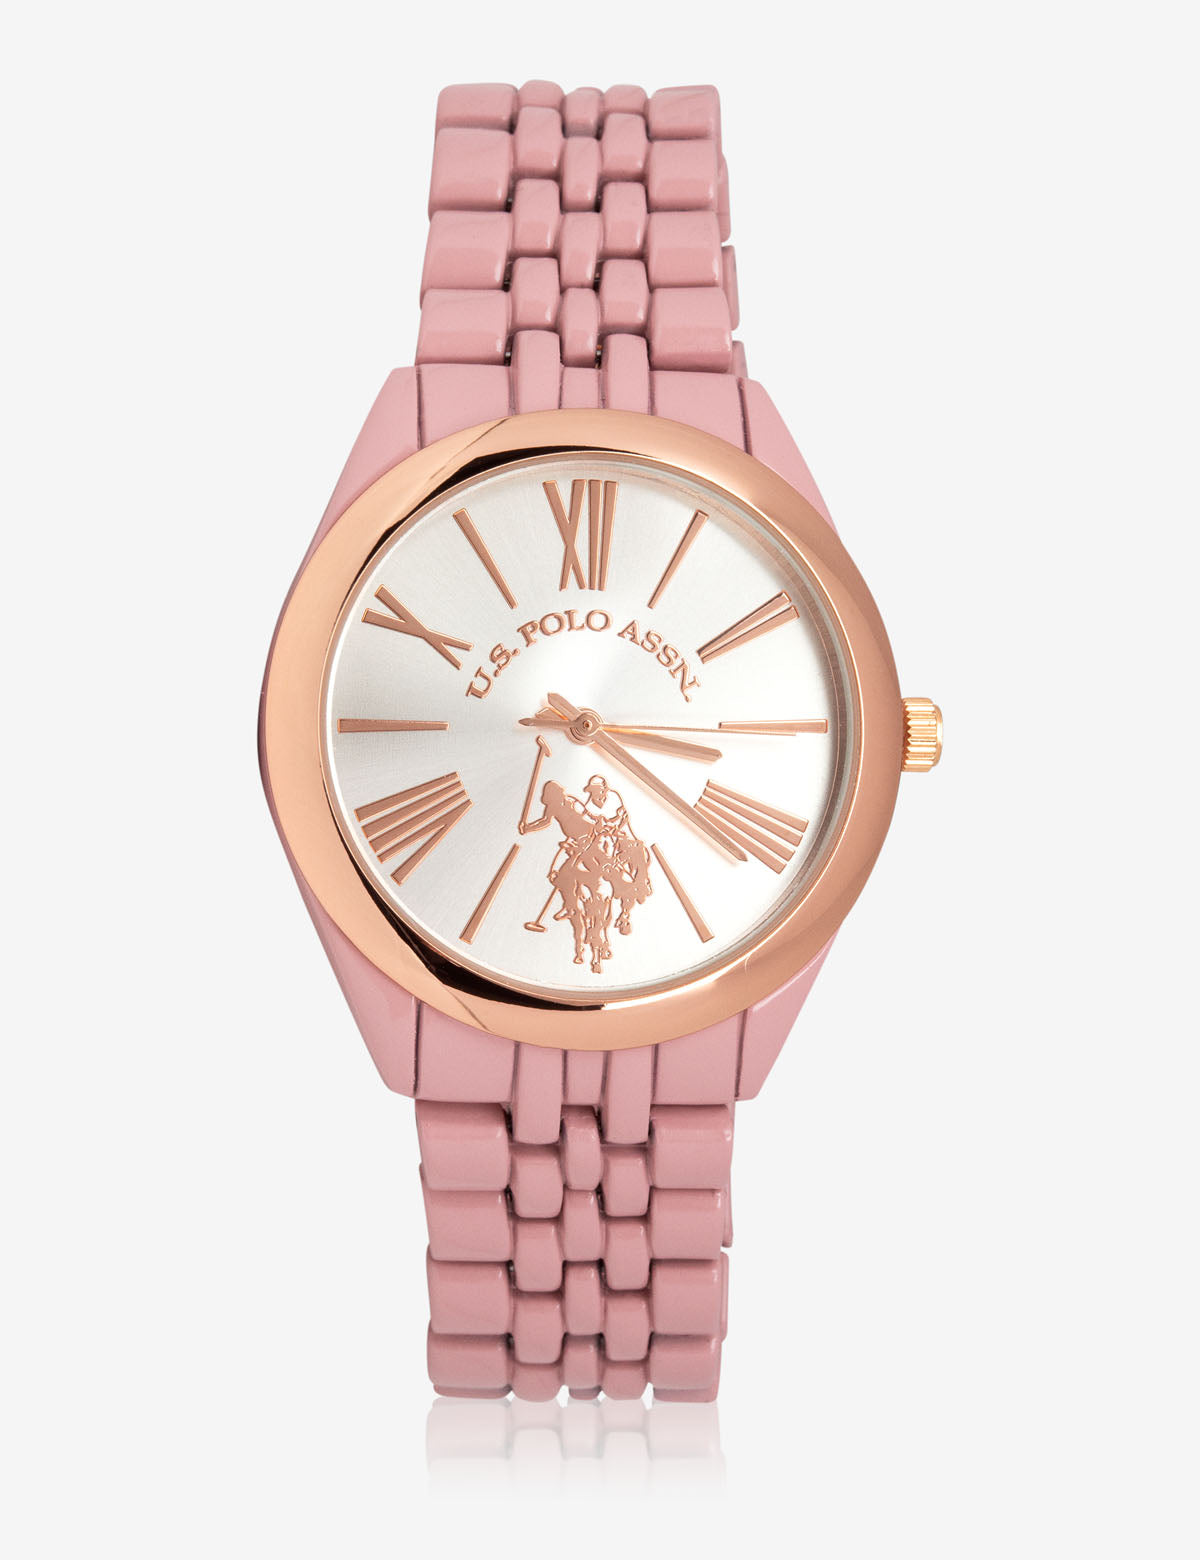 USPA WOMEN'S PINK & ROSEGOLD WATCH